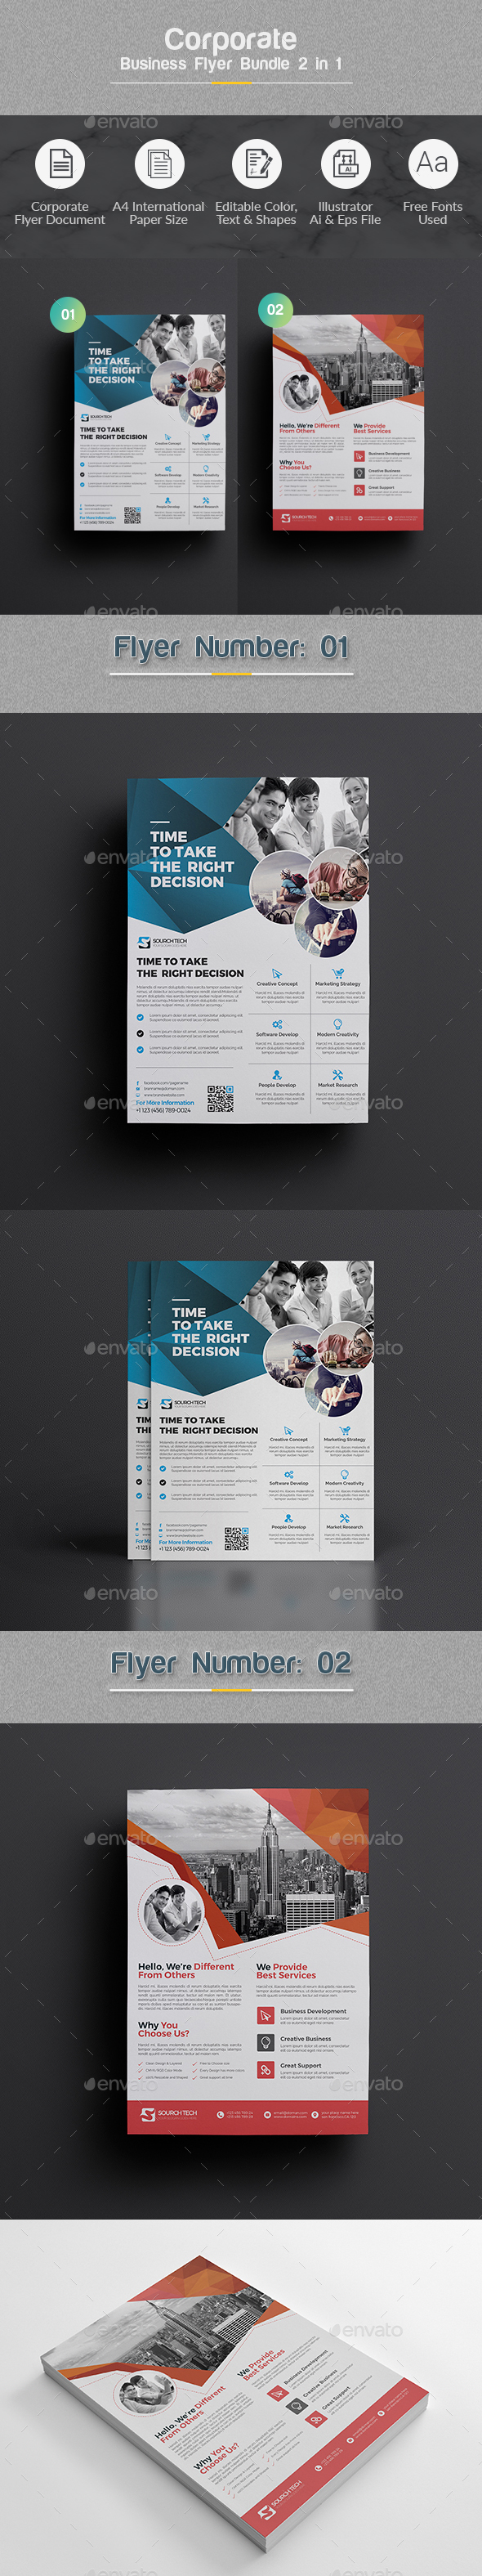 GraphicRiver Flyer Bundle 2 in 1 20982230